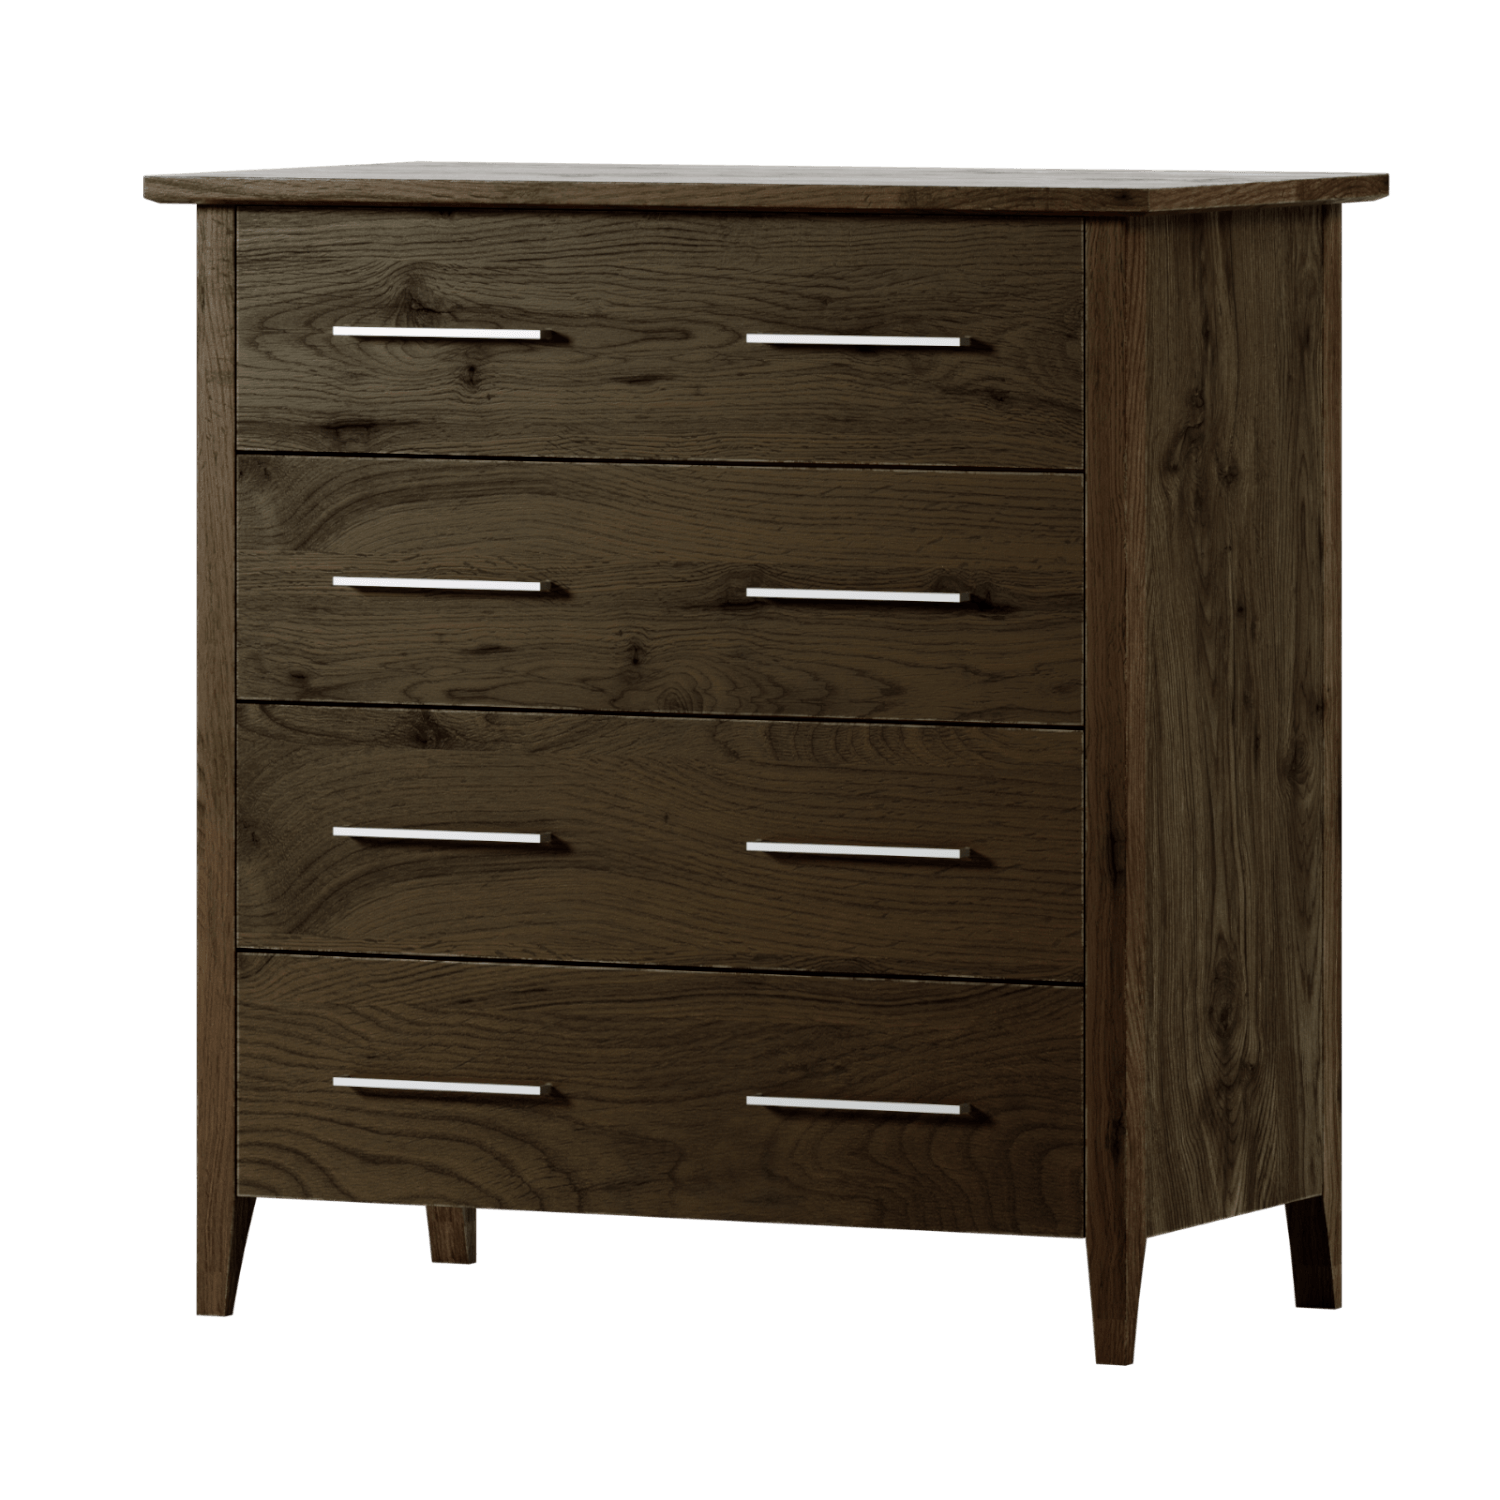 Aged Care Bedroom Rata 4 Drawer Chest, fumed oak, angle view